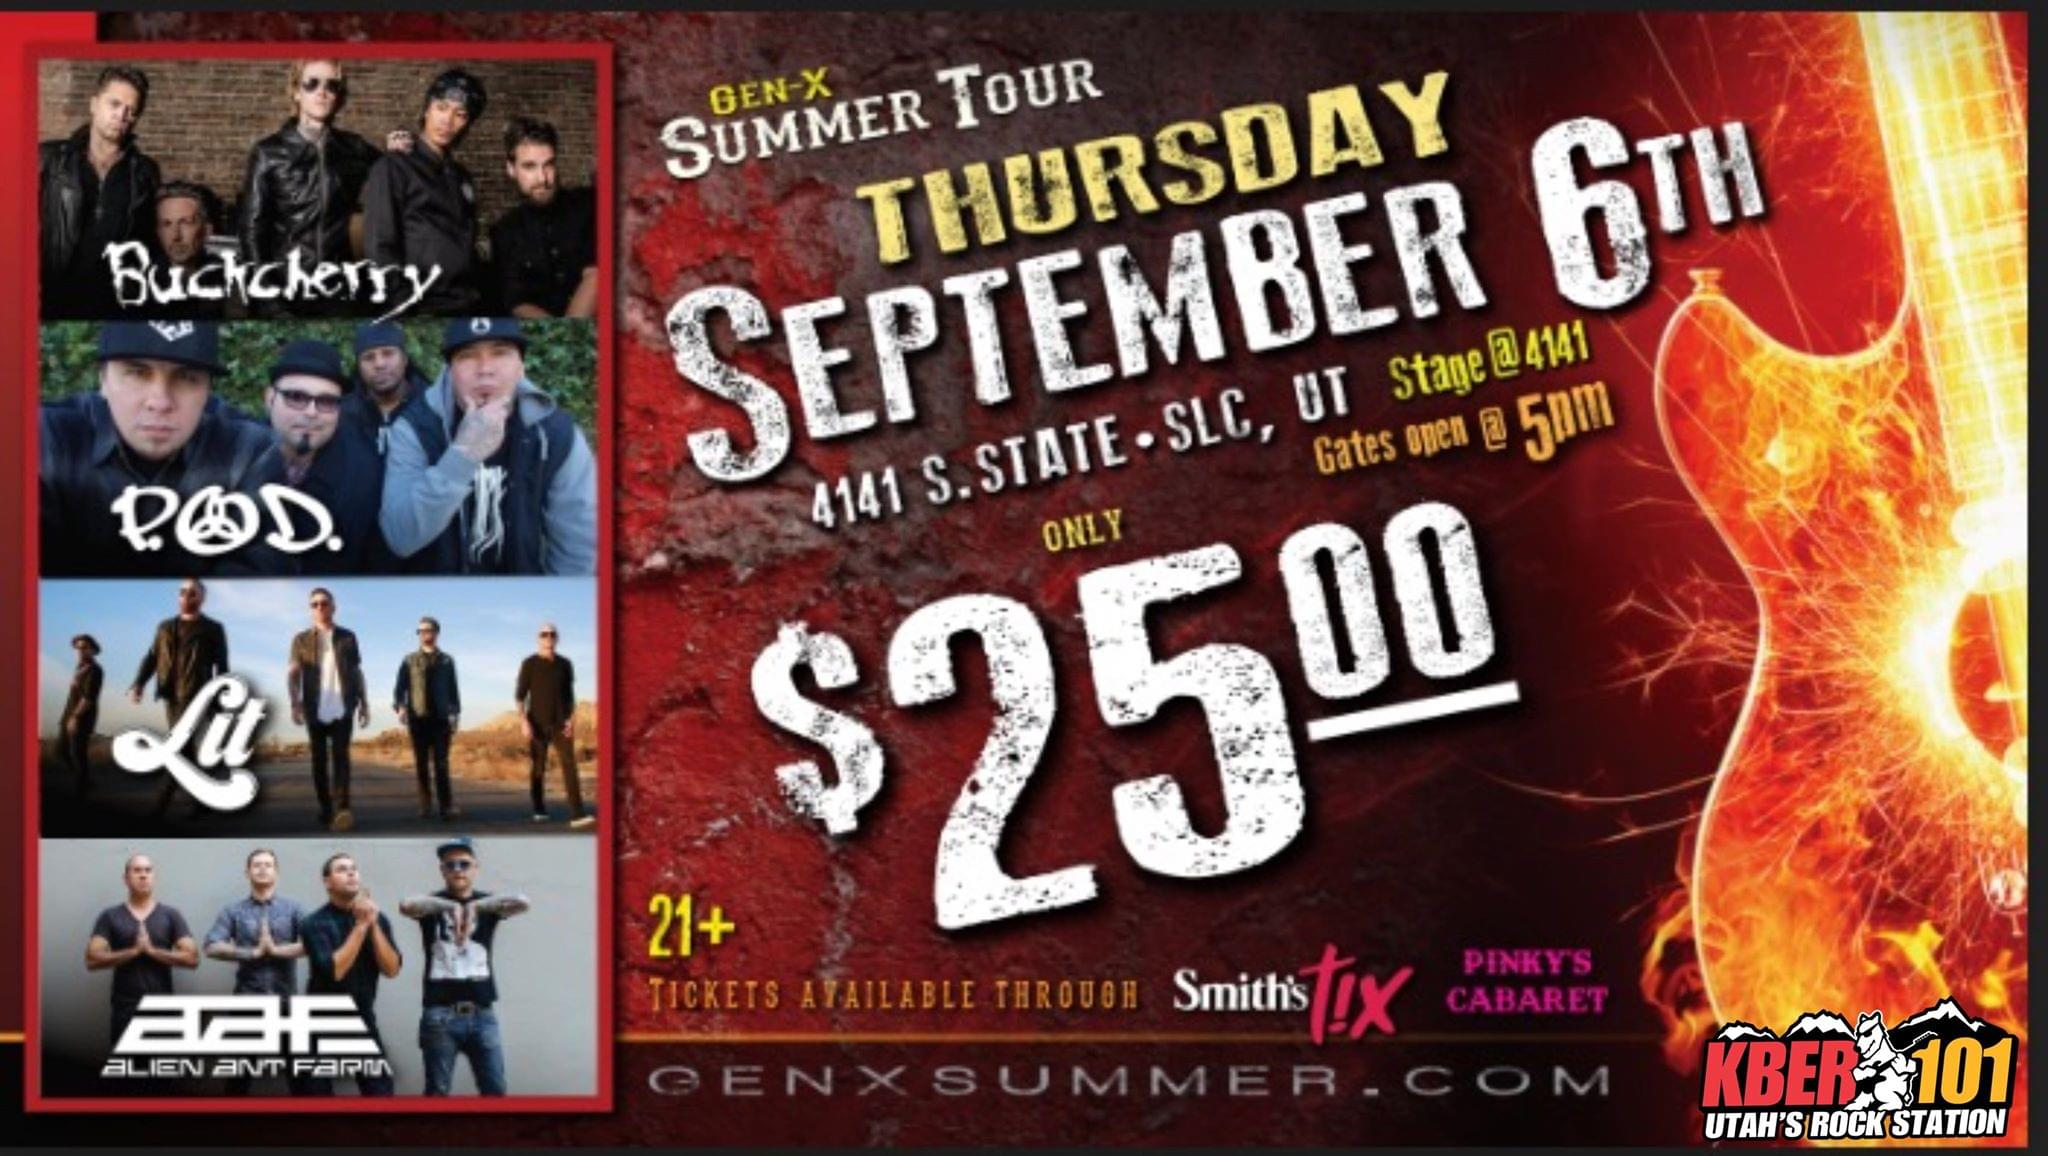 Win A Pair of Tix to Gen X Summer Tour: Featuring Buckcherry, POD, LIT, Alien Ant Farm at the Stage at 4141 Thursday September 6th